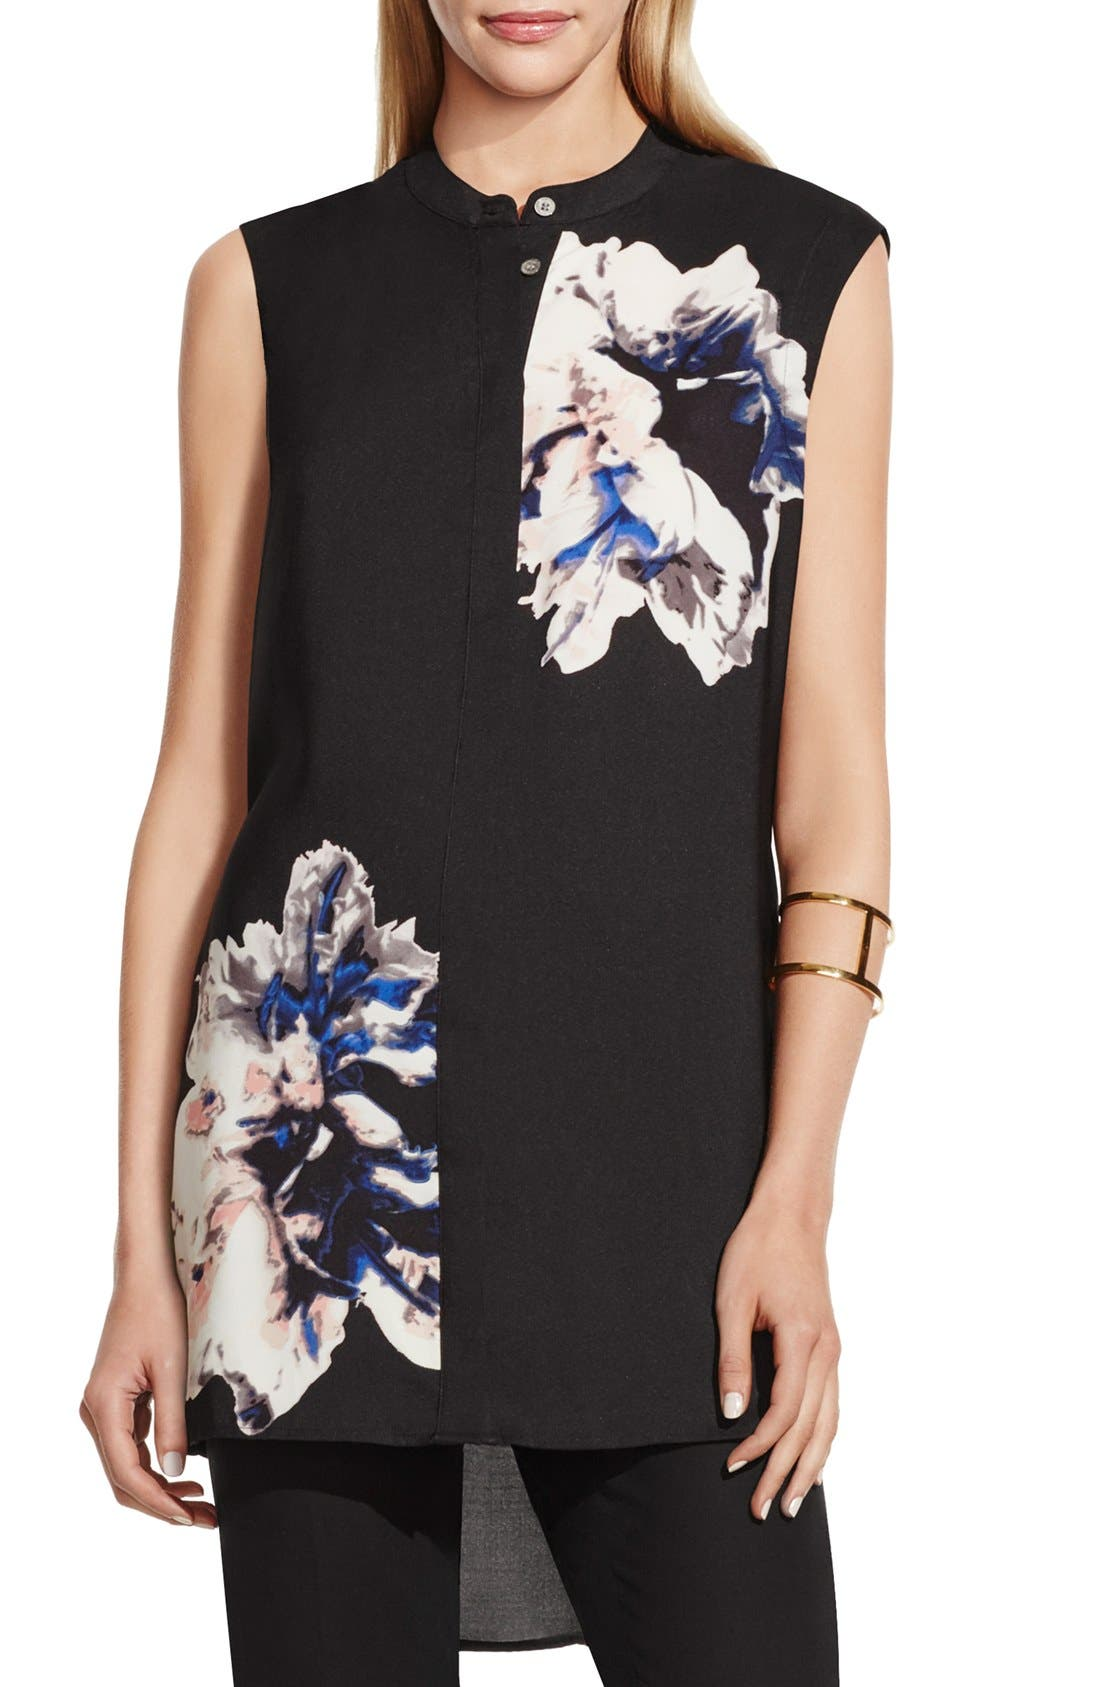 Alternate Image 1 Selected - Vince Camuto 'Duet Floral' Sleeveless Tunic Blouse